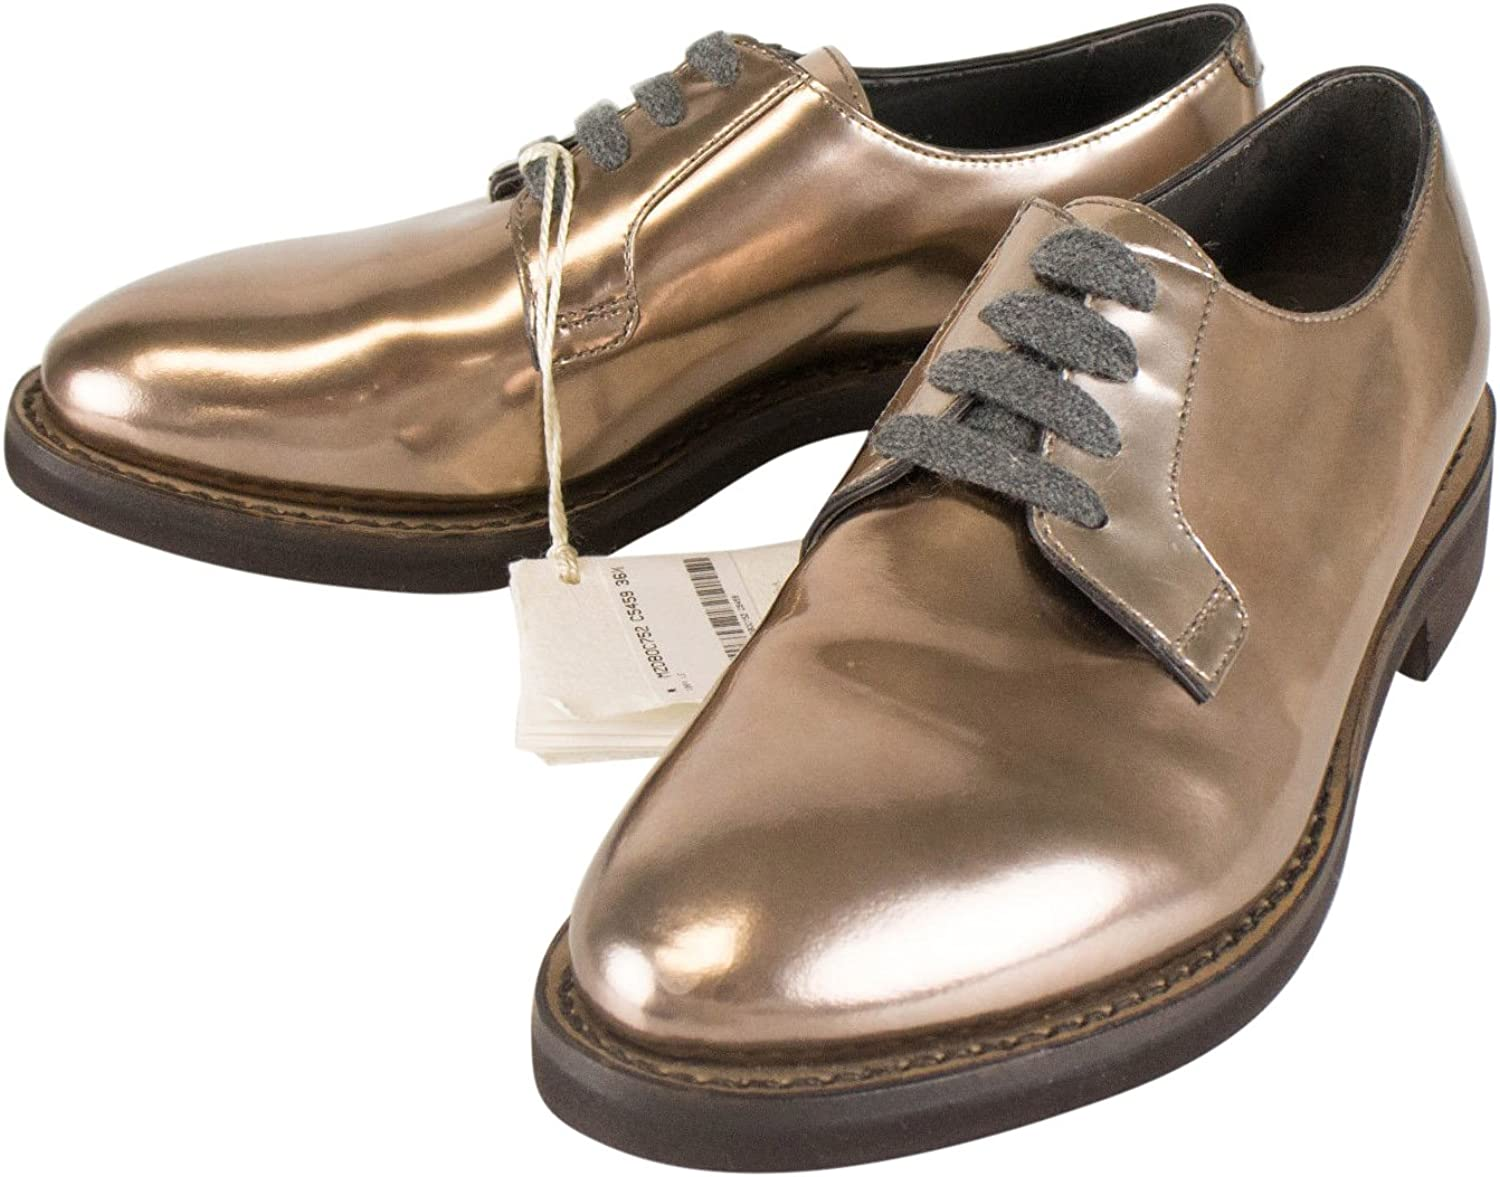 Brunello Cucinelli Brown Patent Leather Oxford shoes Size 36.5 6.5